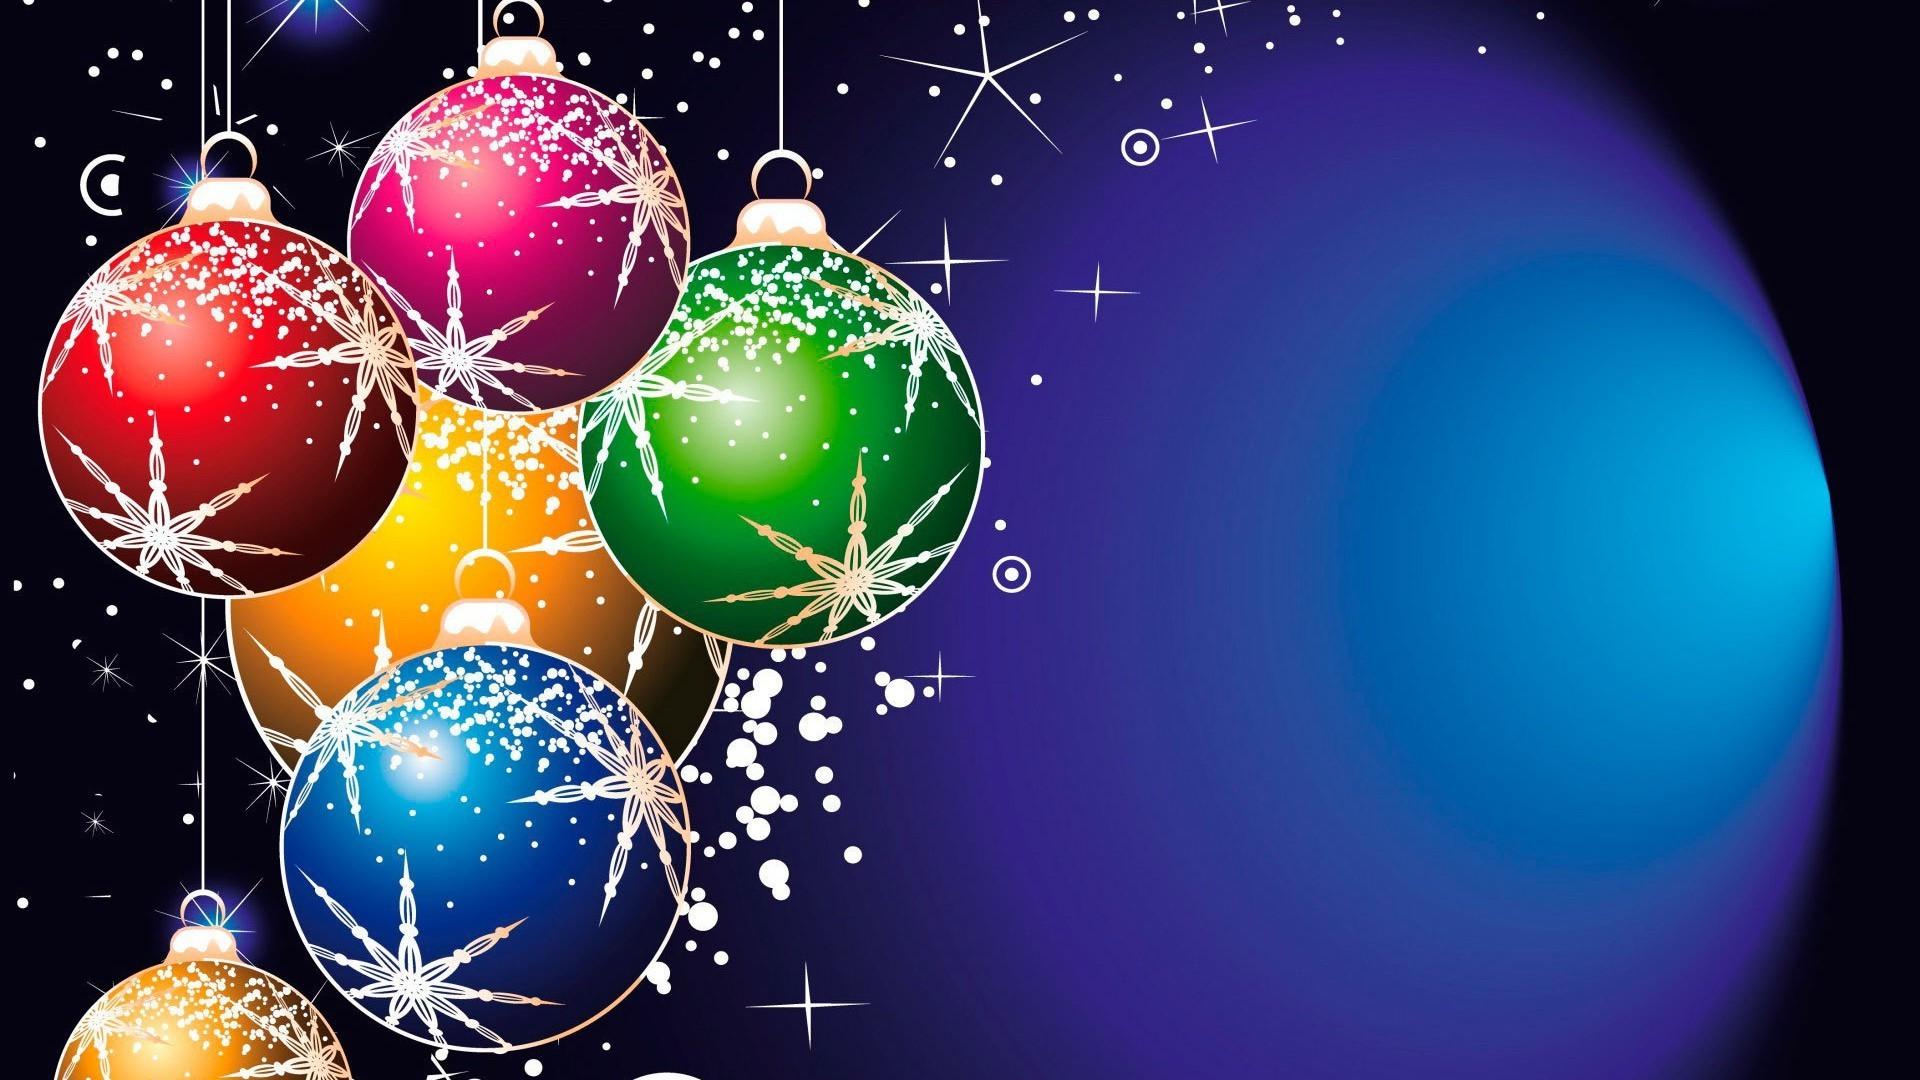 new year christmas sphere ball shining bright illustration space ball-shaped science sparkling glisten winter round merry desktop graphic design